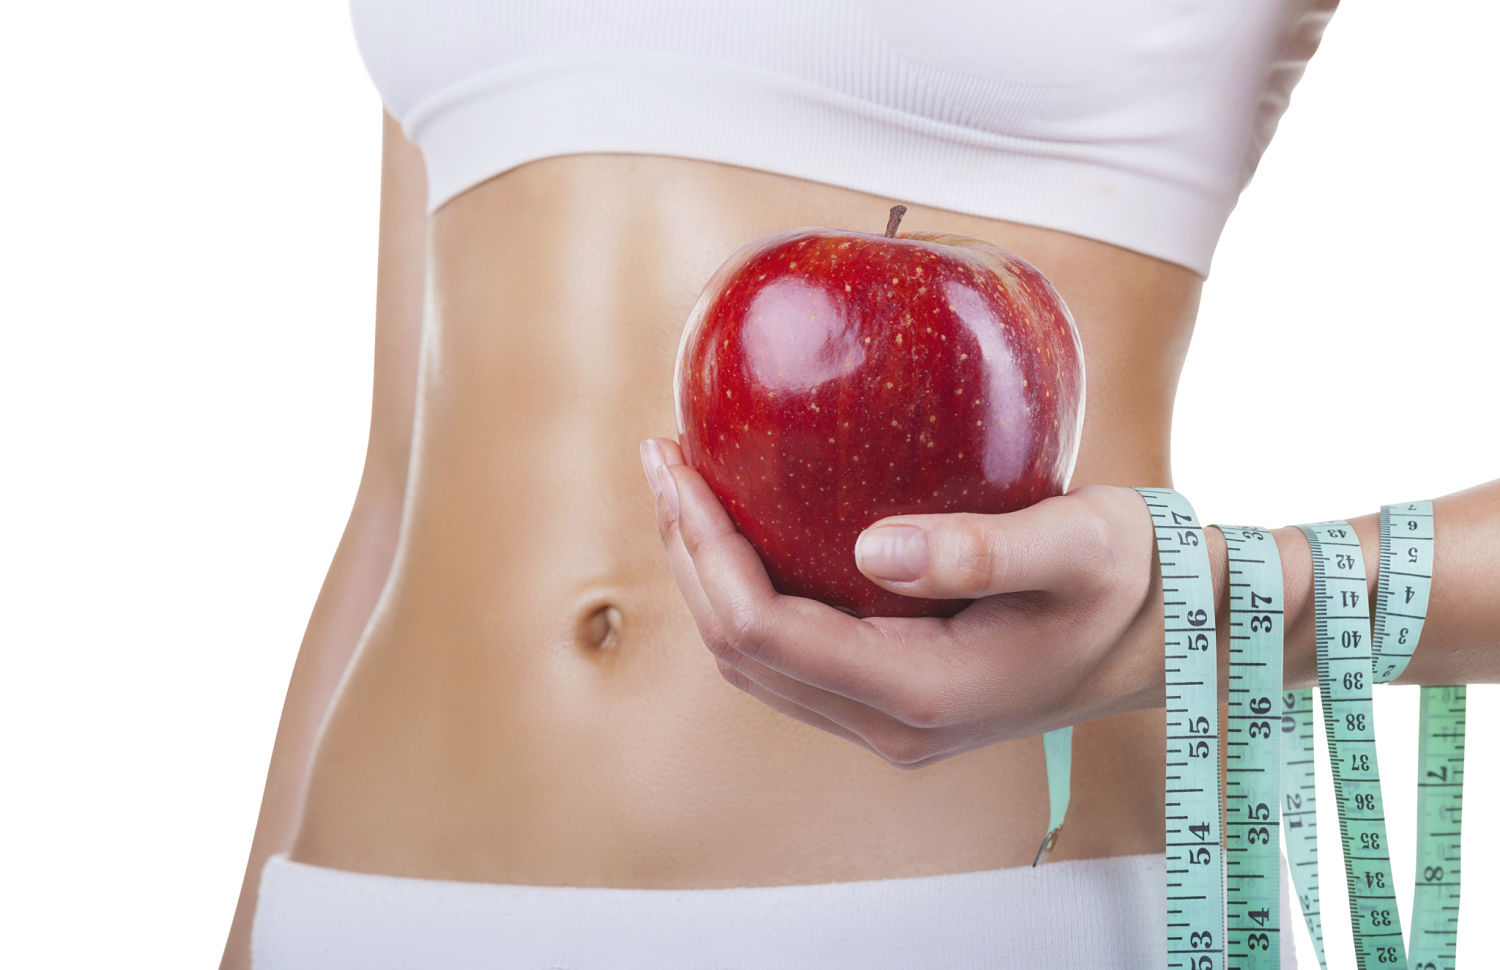 How to lose your weight by using those kinds of diets